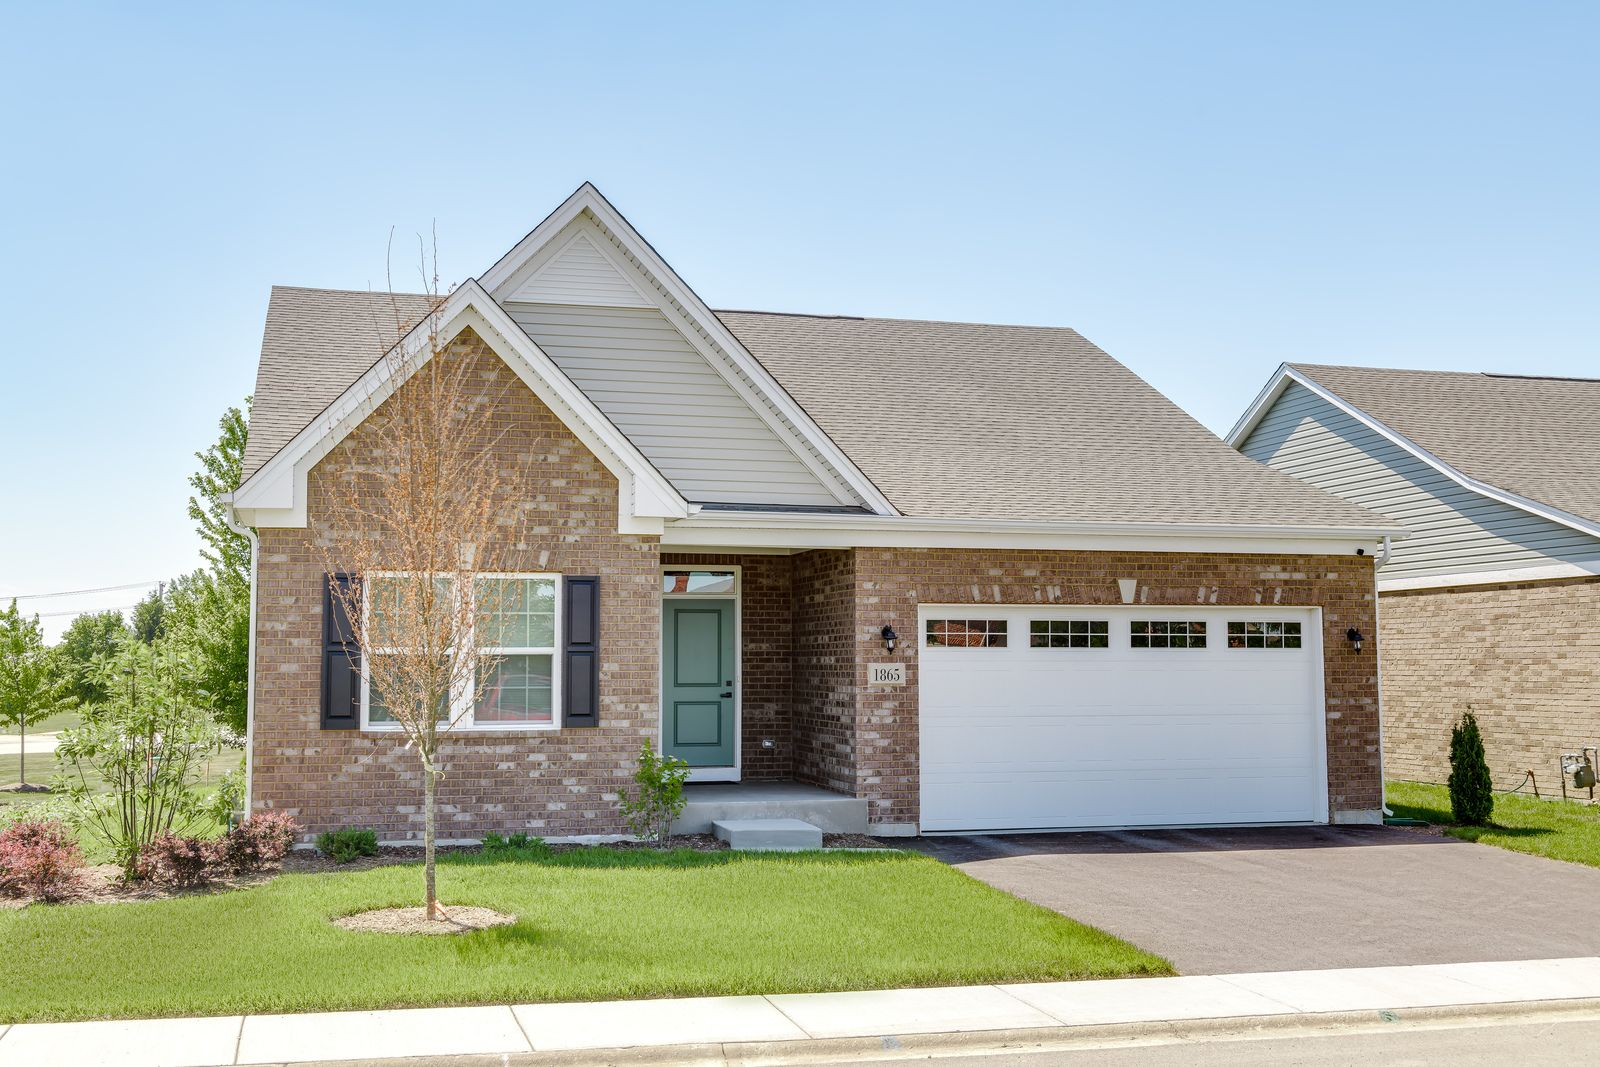 Welcome to Heather Glen in New Lenox:Beautiful, ranch homes witha low maintenance lifestyle. Enjoy friends, neighbors and community gatherings in this quaintclose-knit community.Click here to schedule your visit today!